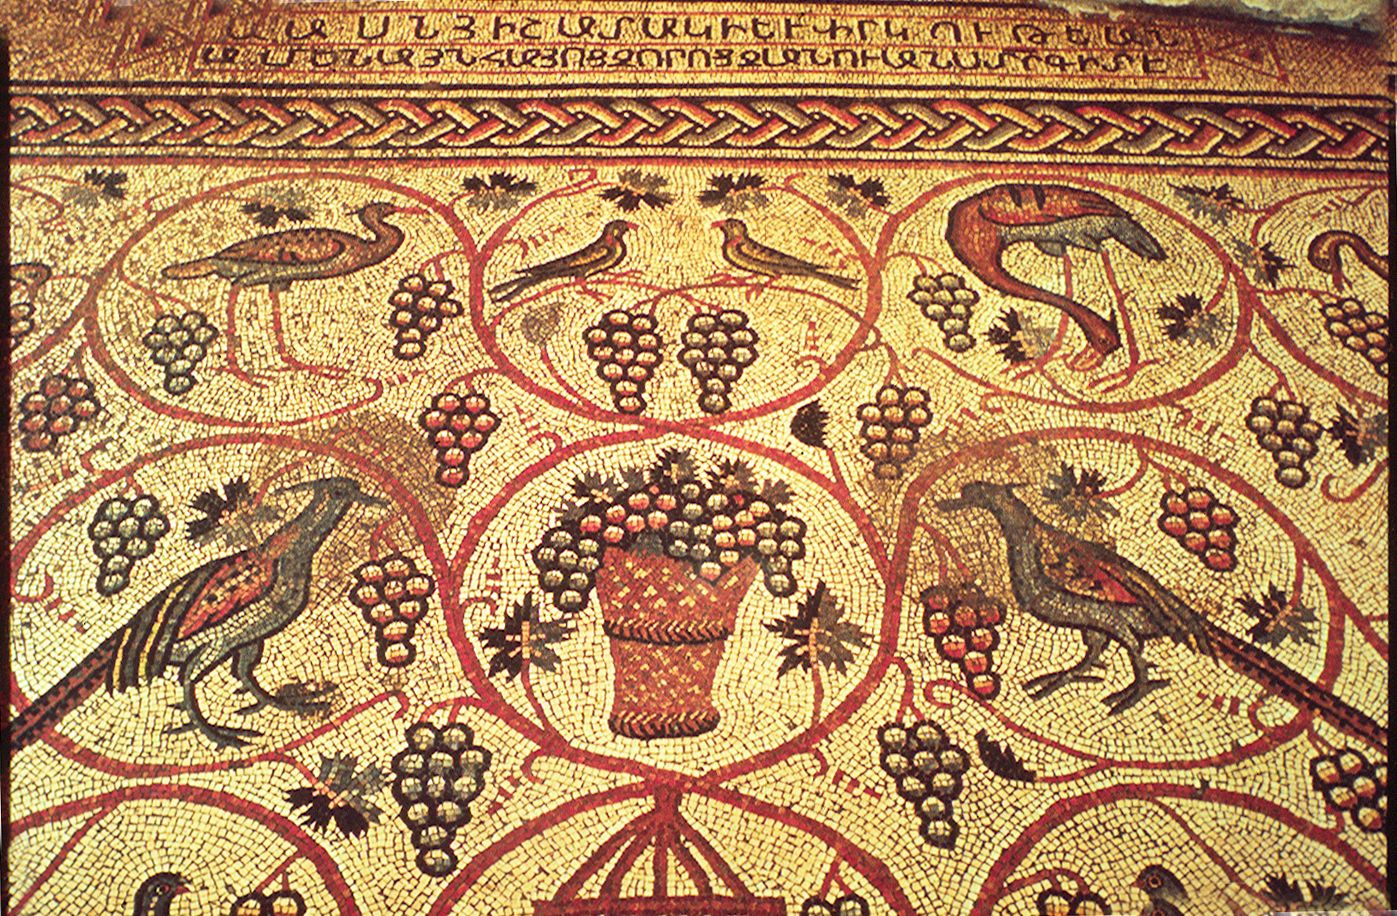 A mosaic dating from the 6th century, including Armenian writing, discovered during construction works in 1894